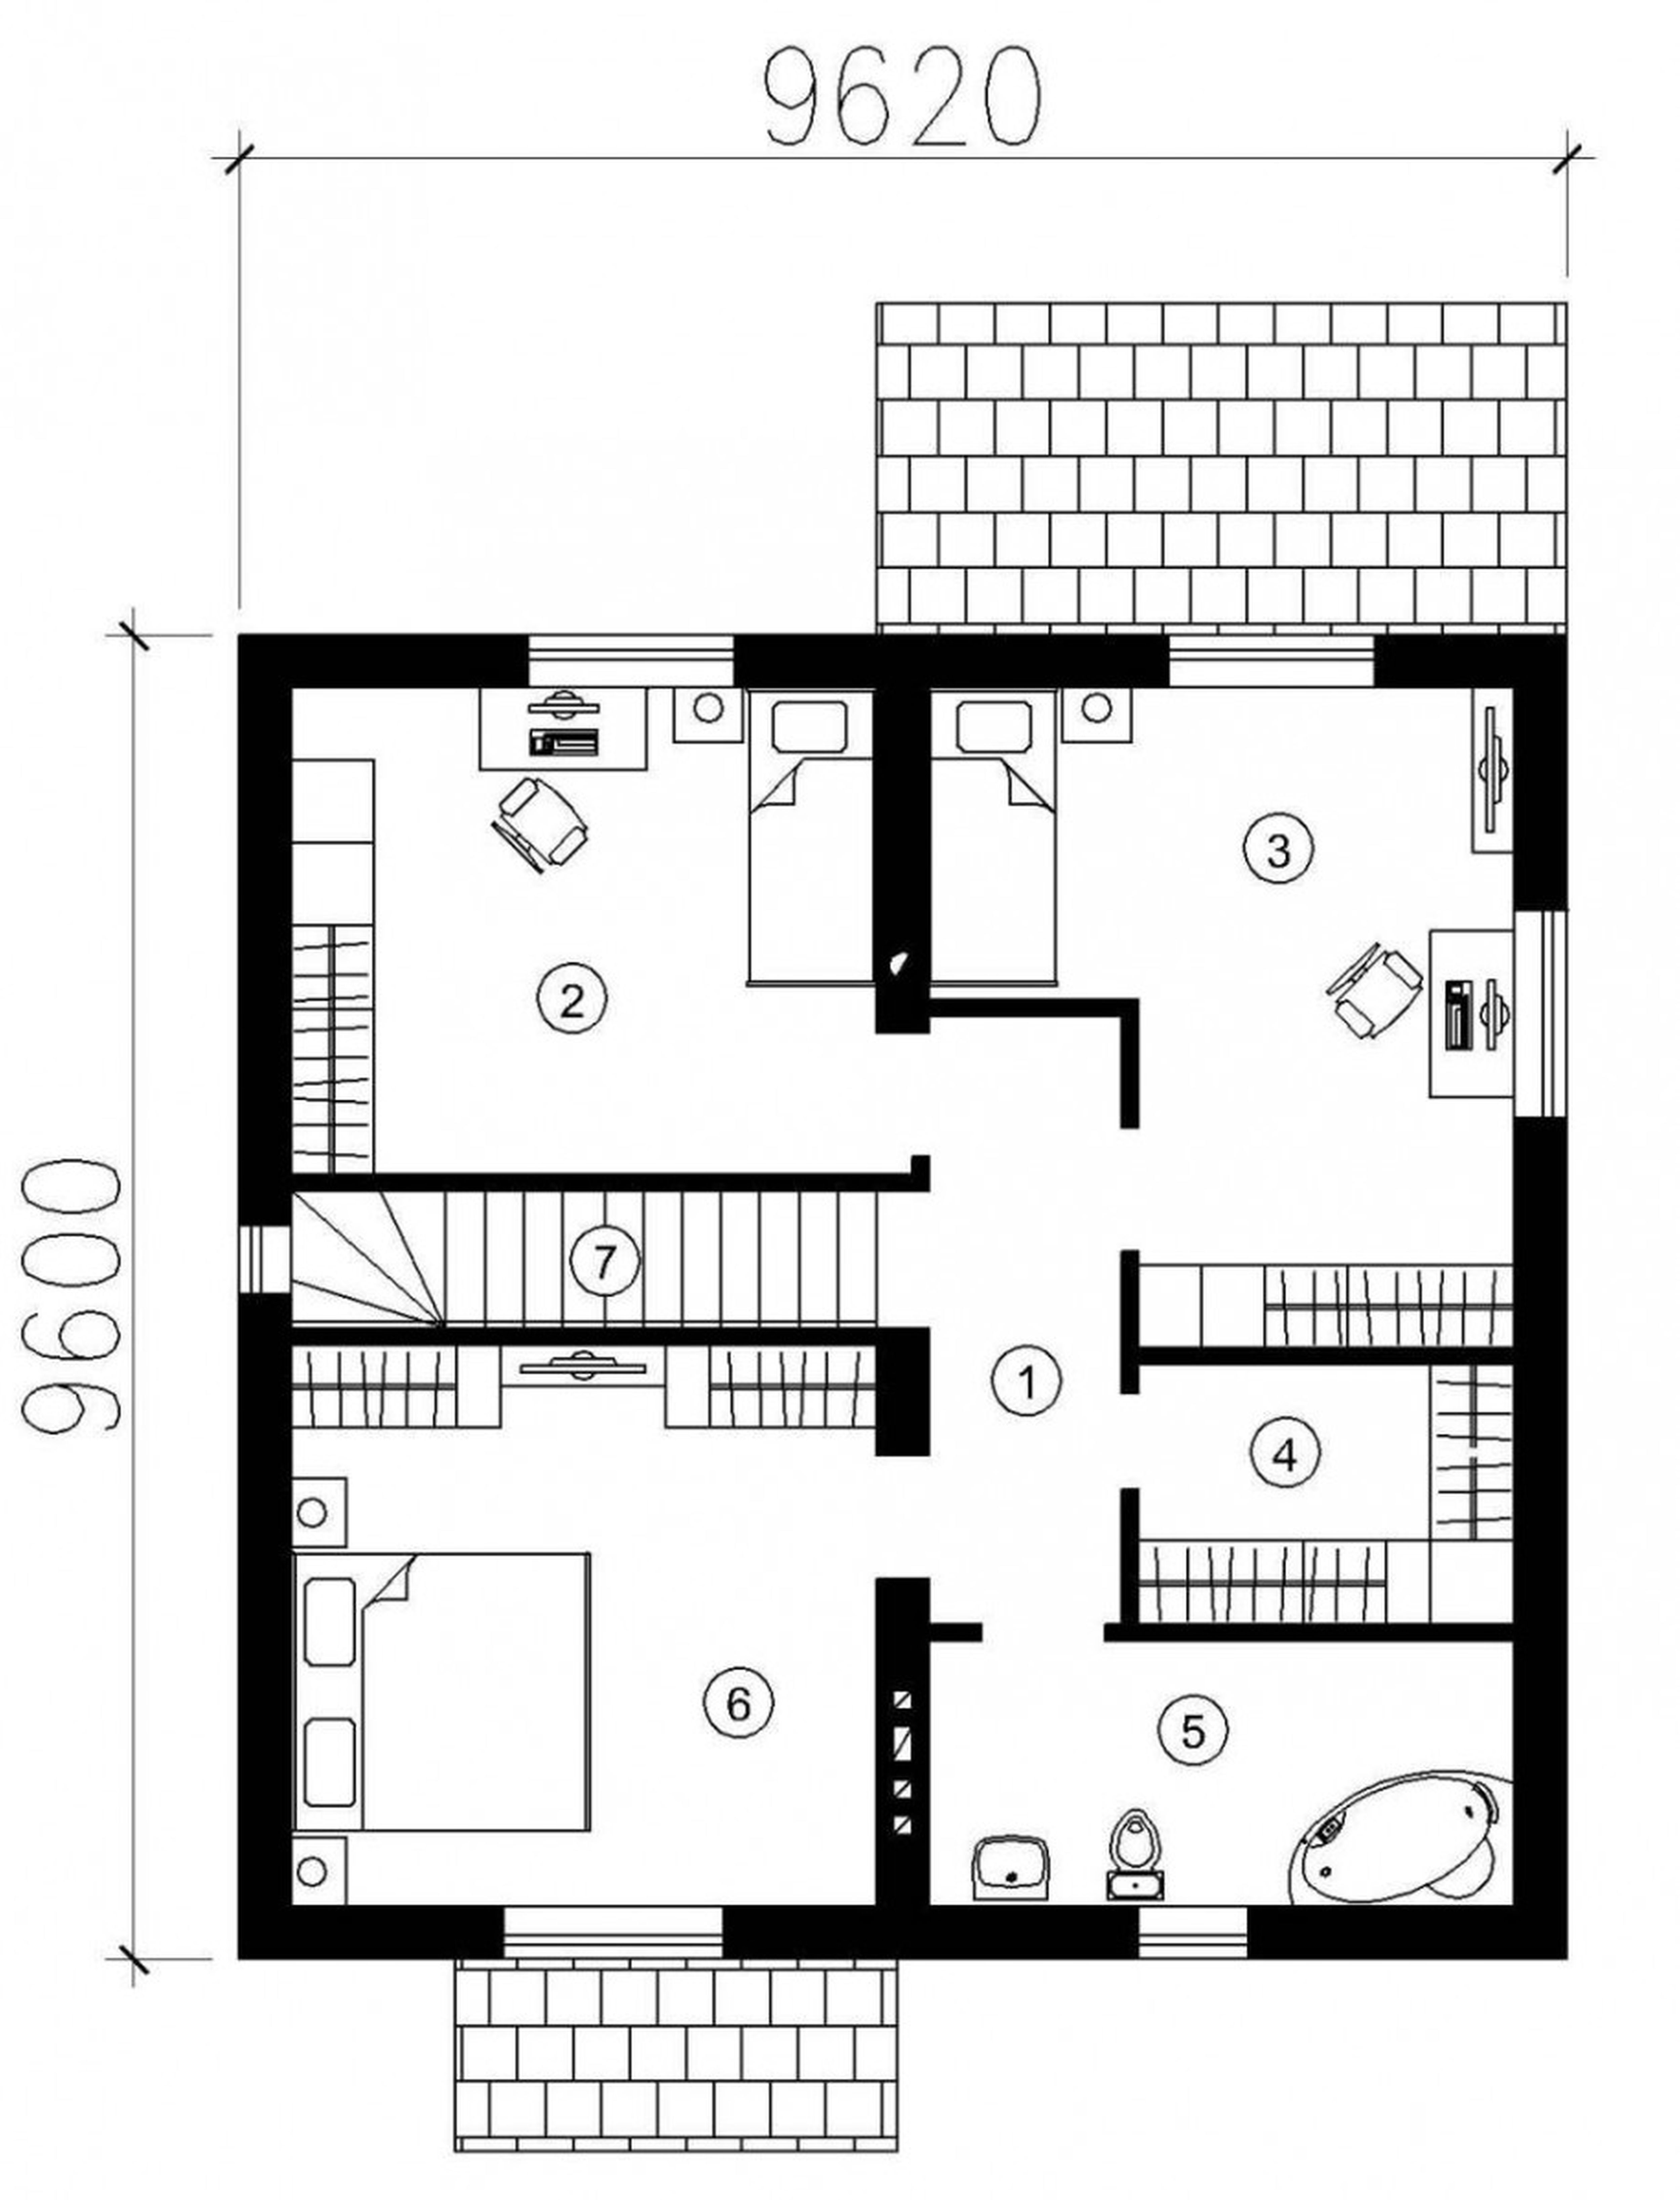 Beautiful small modern house designs and floor plans cottage style with porches farmhouse